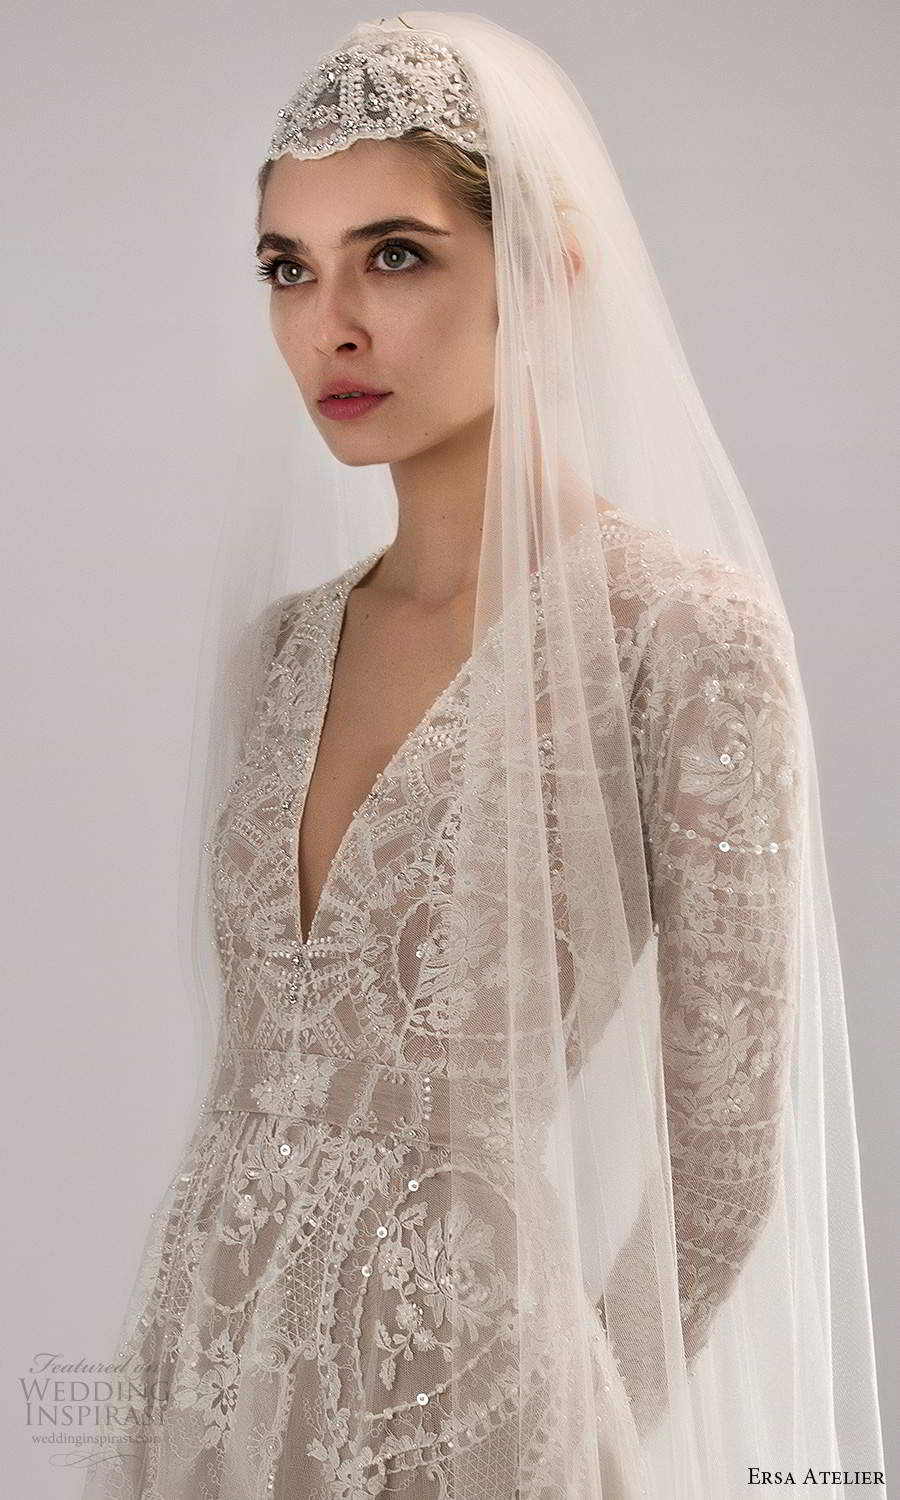 ersa atelier spring 2021 bridal long sleeves plunging v neckline fully embellished a line wedding dress chapel train veil (9) zv